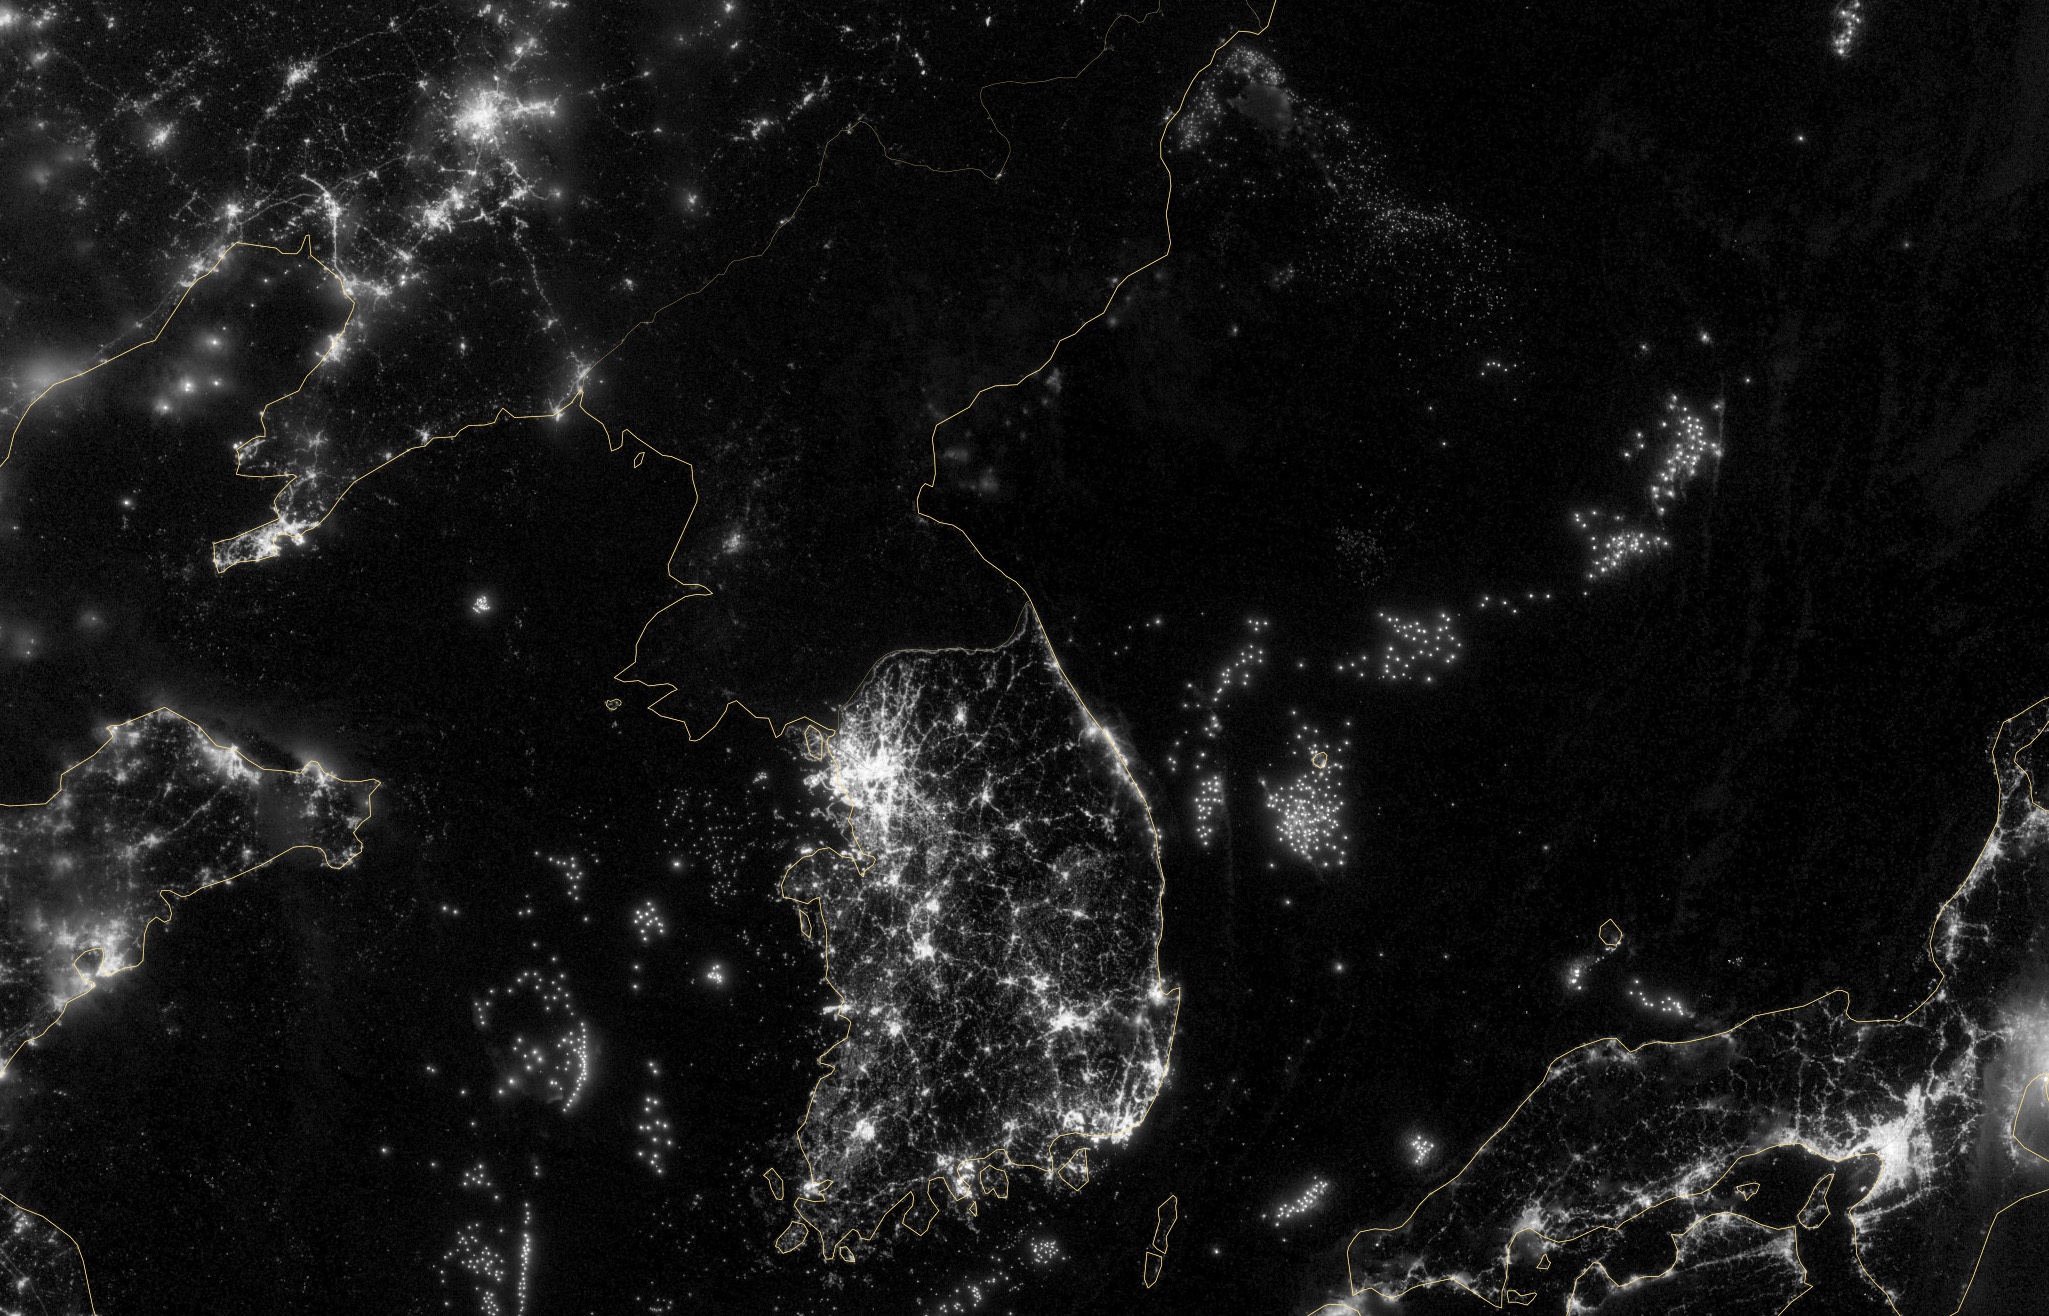 Koreas Political Divide as Seen by Satellite  Big Think